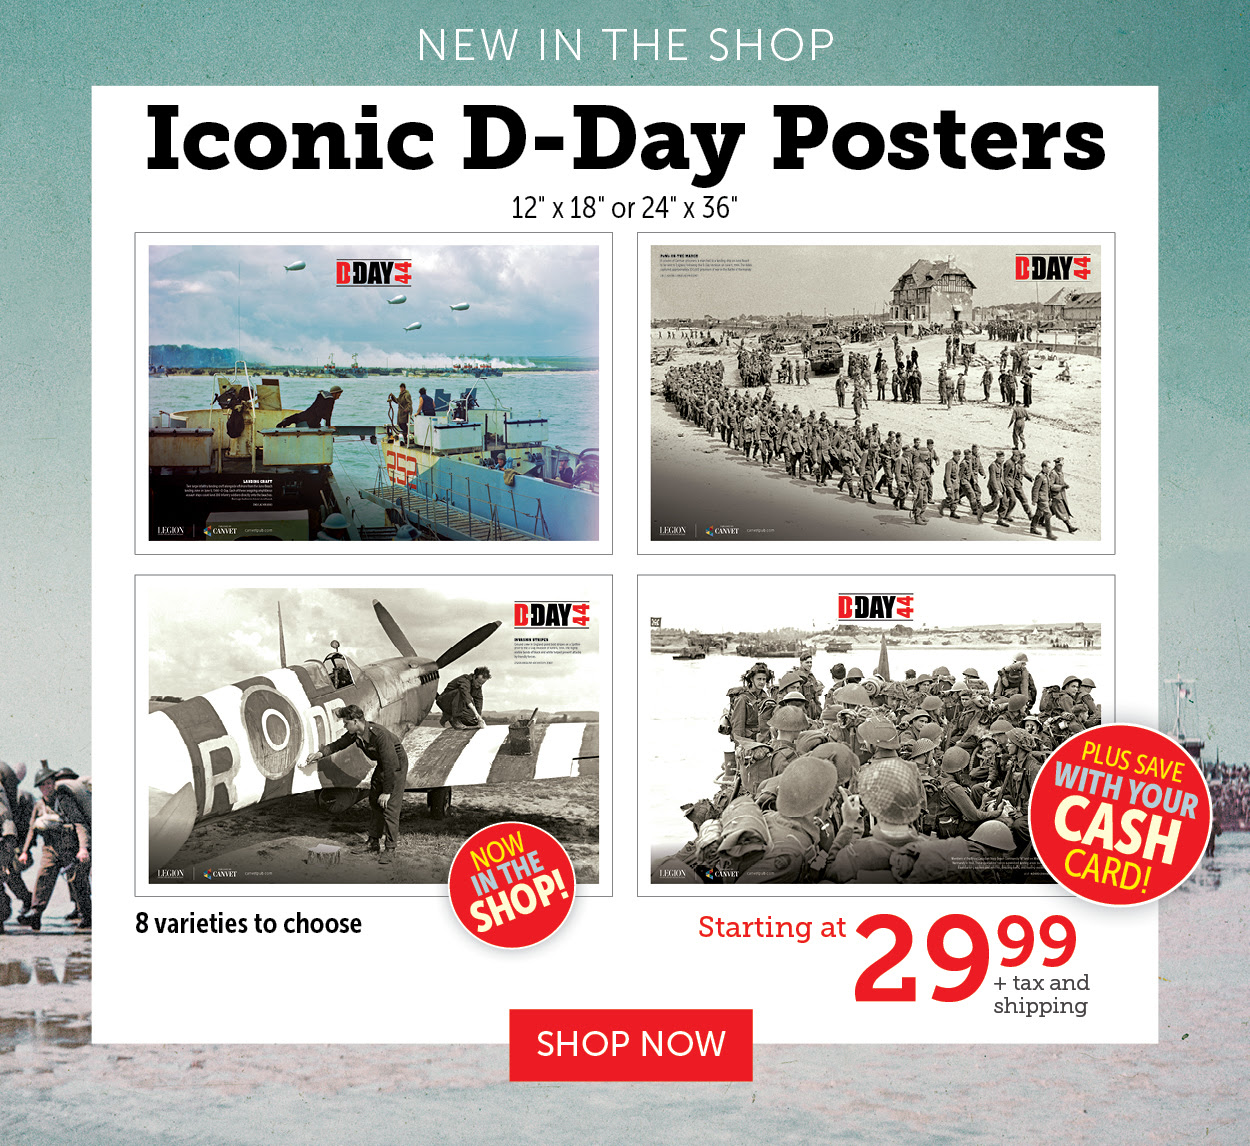 Iconic D-Day Posters!